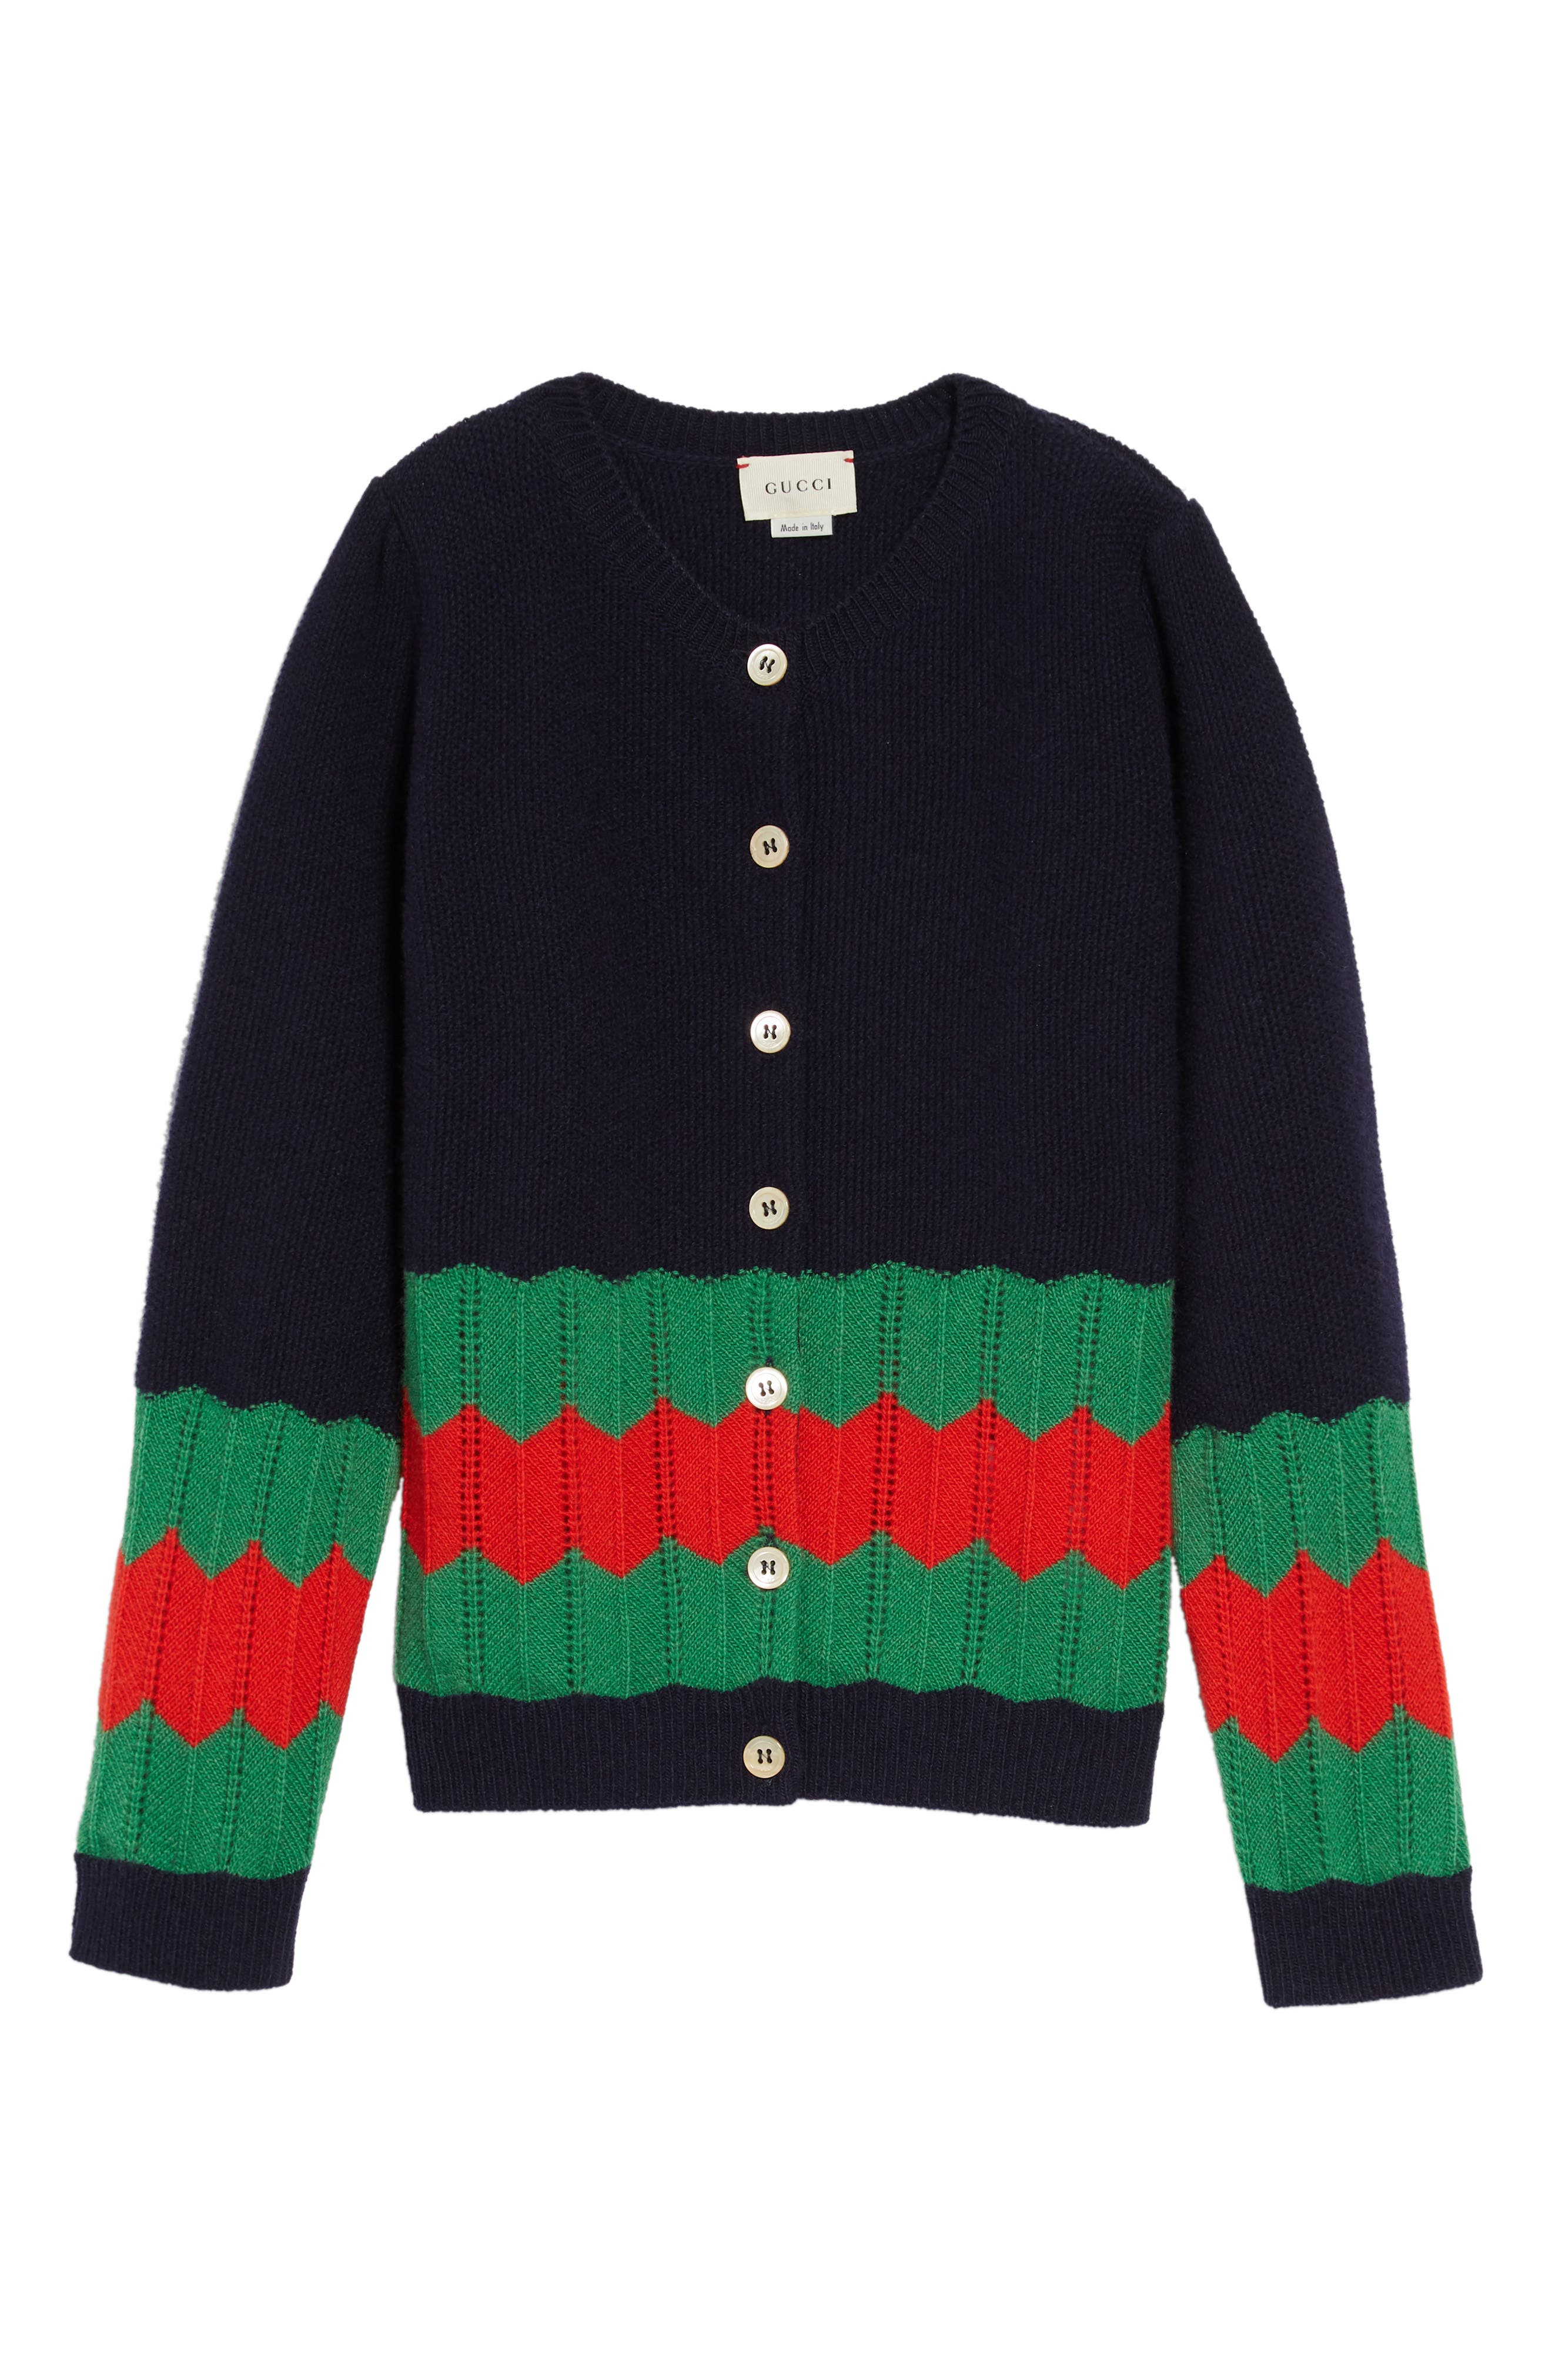 Wool Knit Cardigan,                             Main thumbnail 1, color,                             NAVY/ GRASS/ LIVE RED